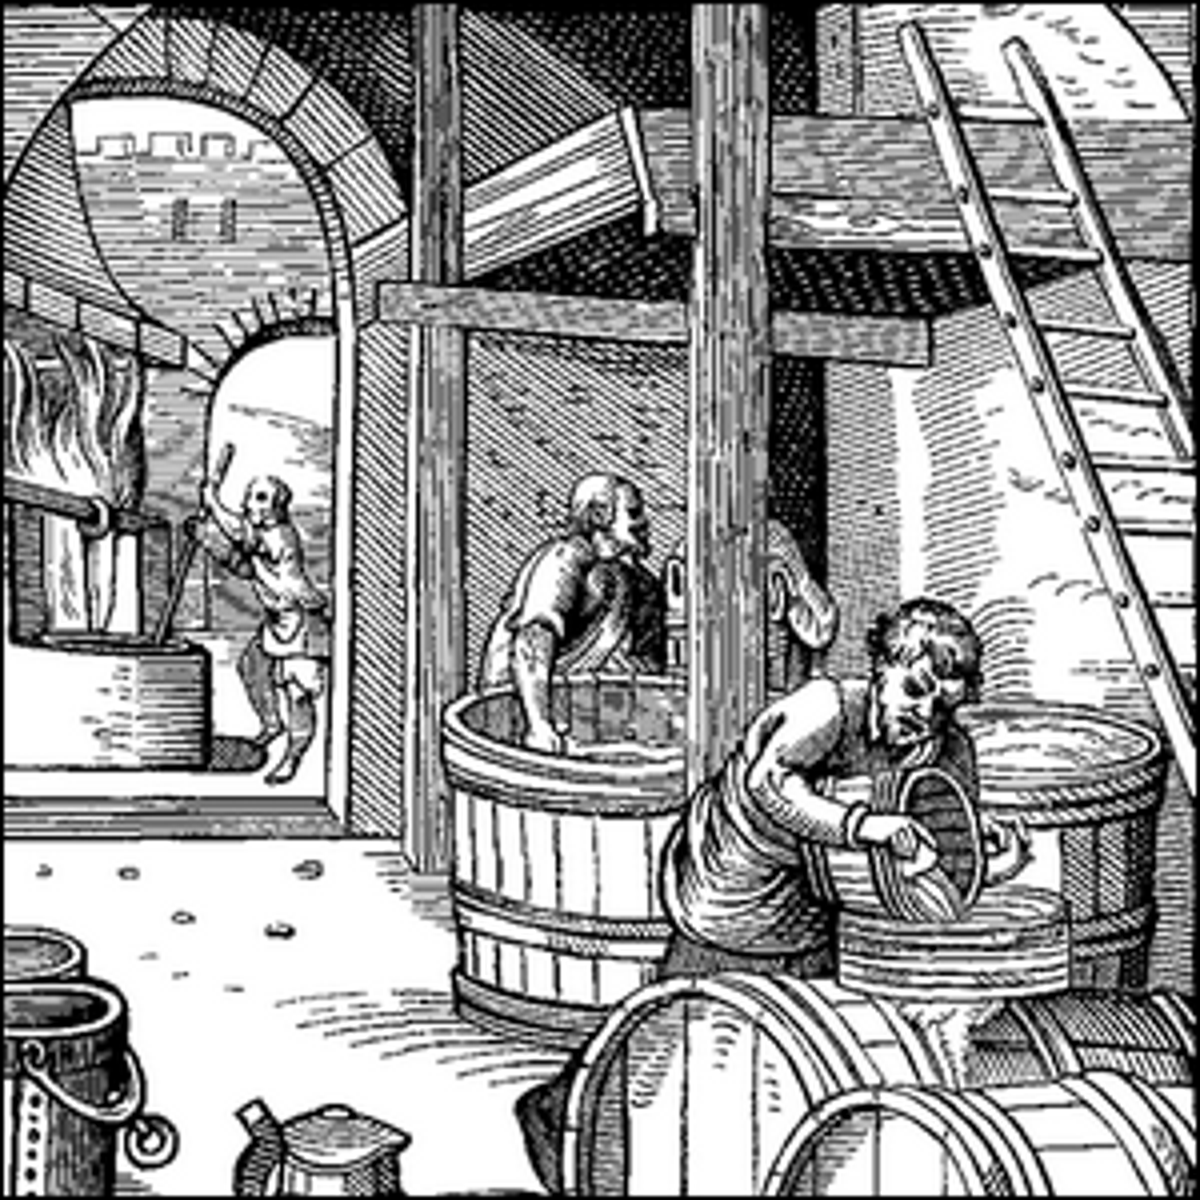 A 16th century engraving of beer brewers at work.